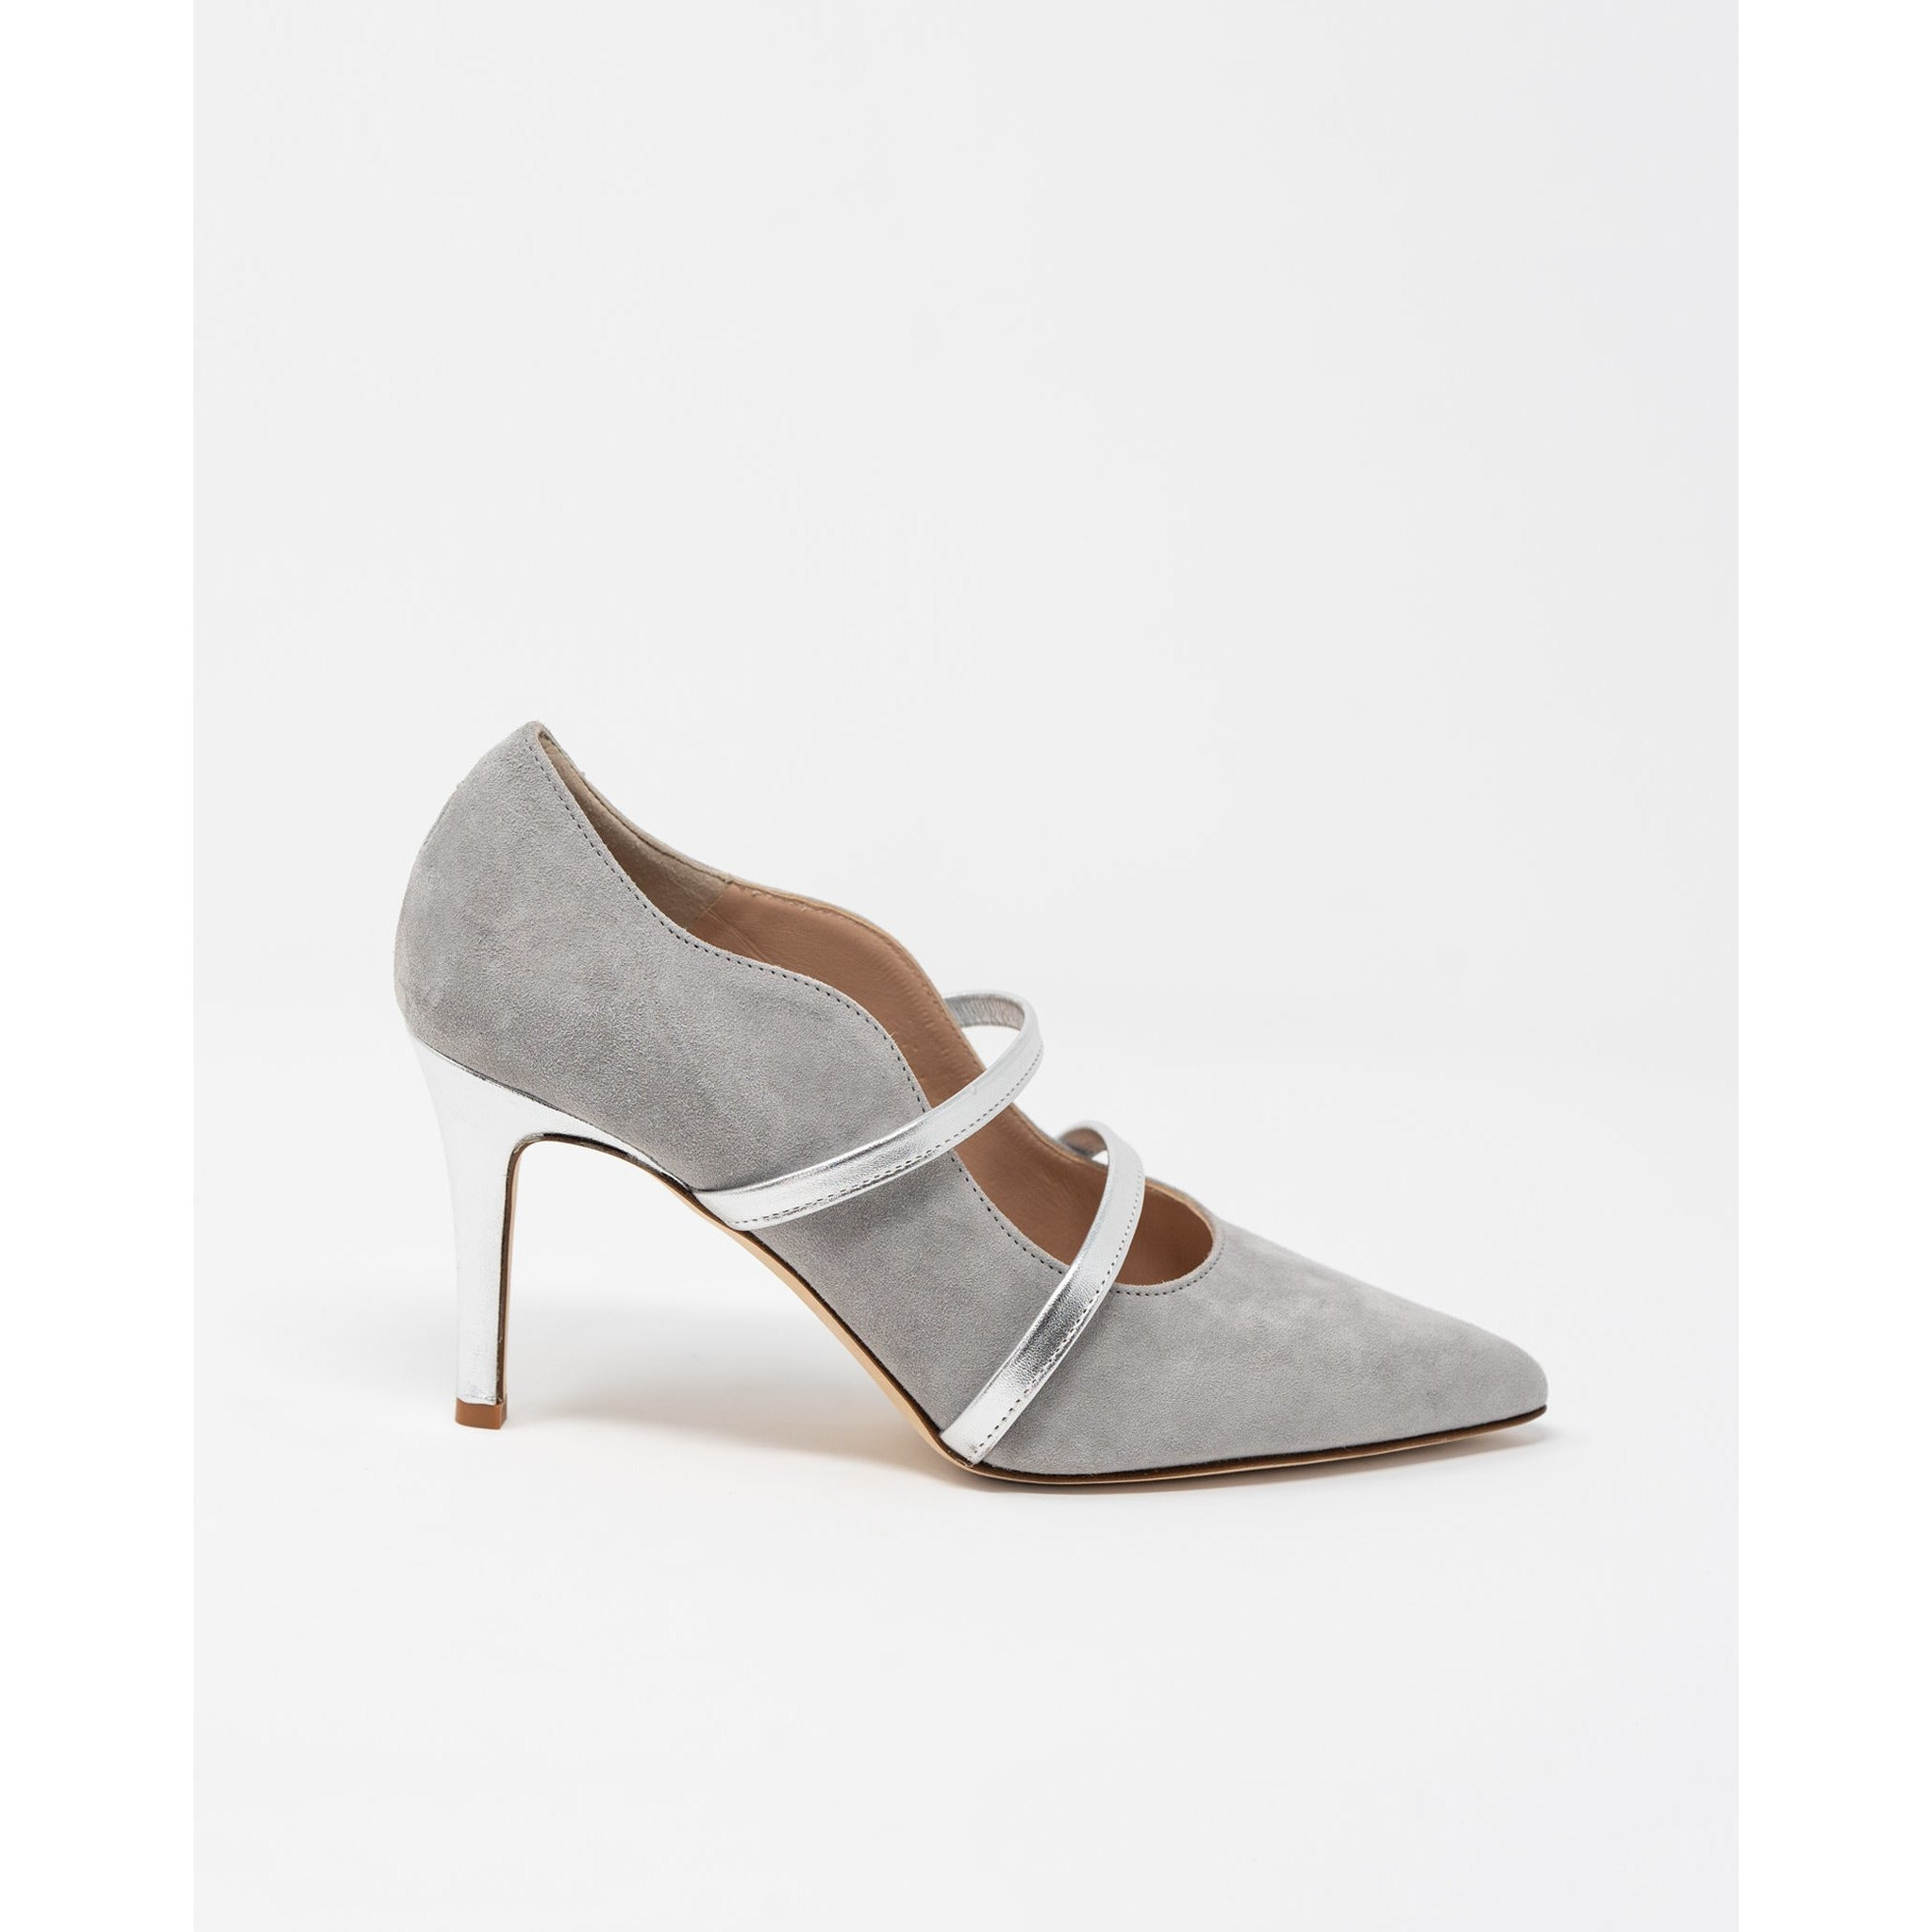 MIL5001 H80 Women Pumps - New Spring Summer 2020 Collection